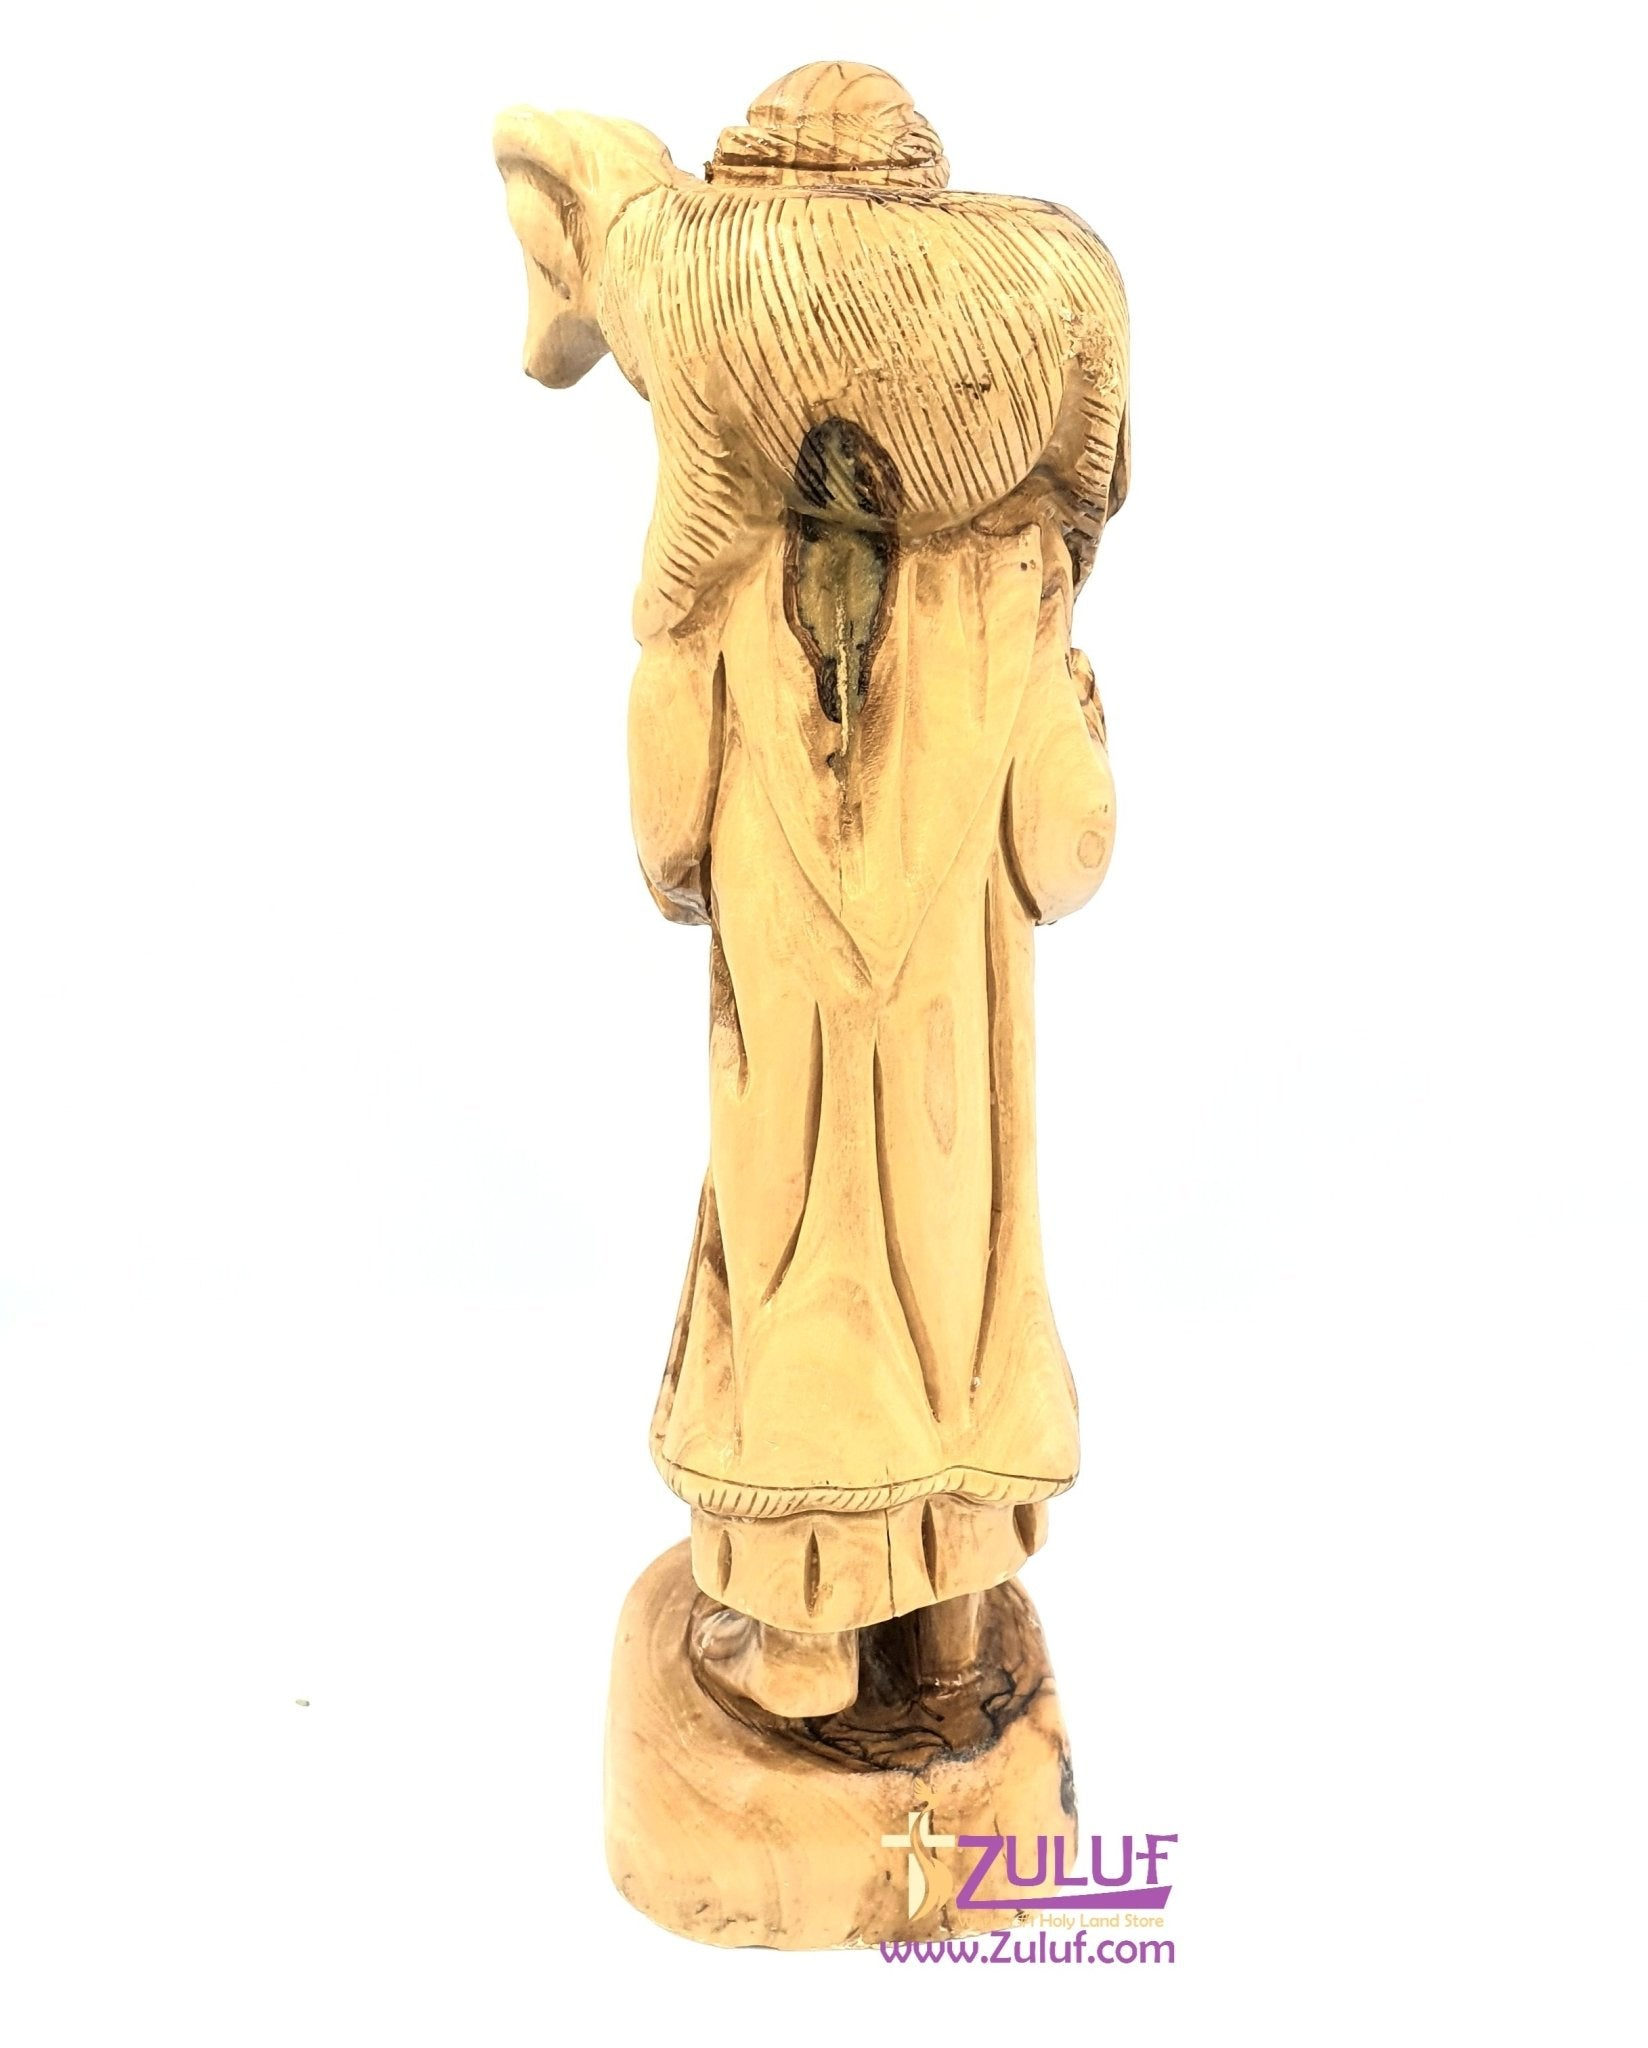 Olive wood hand made shepherd carrying the Lamb statue FLG046 - Zuluf